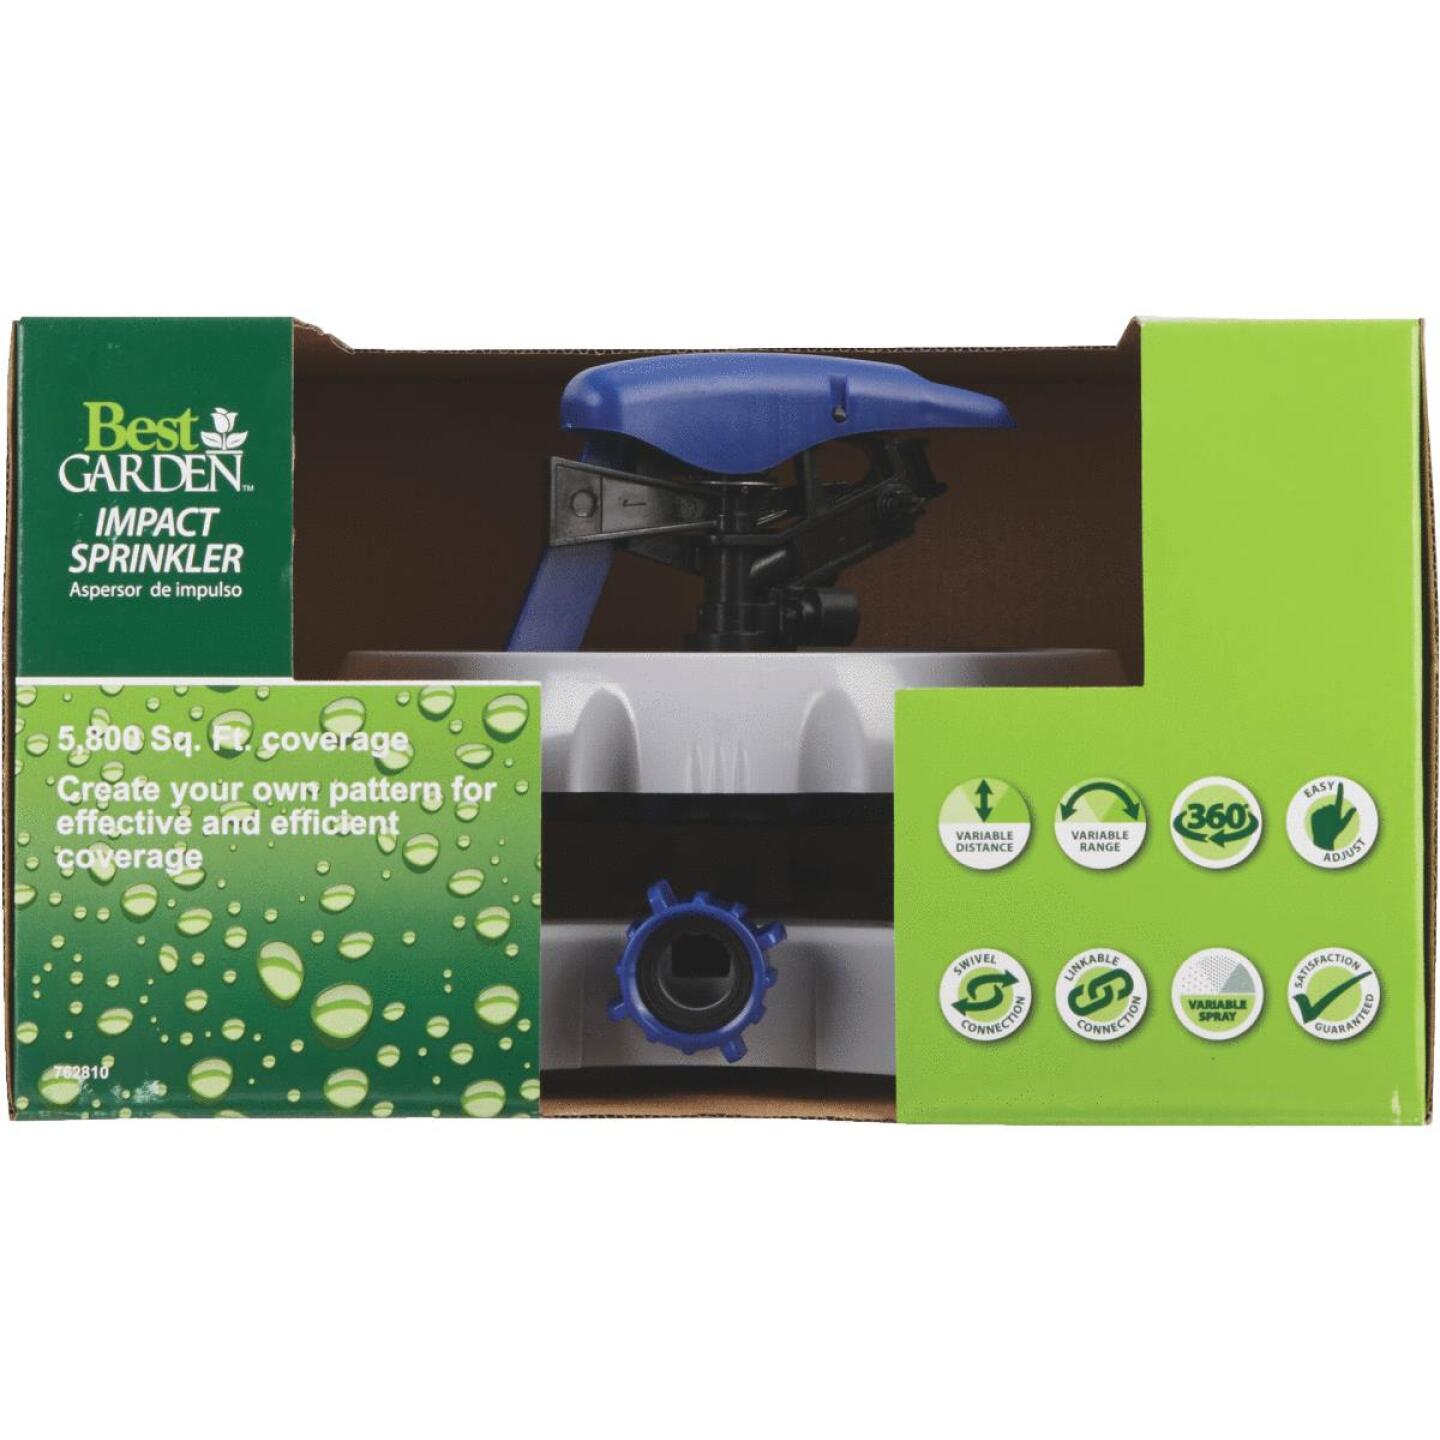 Best Garden Poly 5800 Sq. Ft. Sled Impulse Sprinkler with Programming Disc Image 2